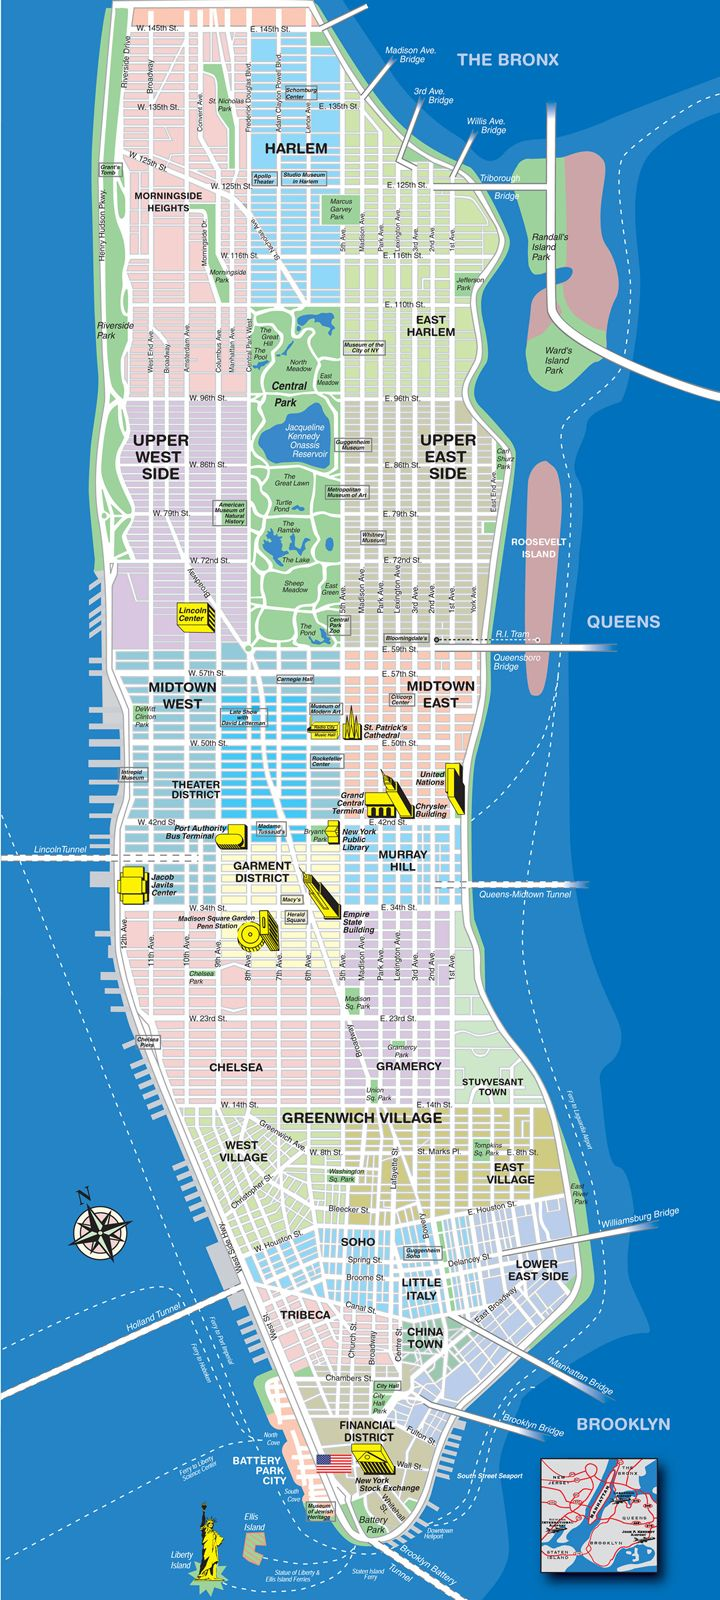 new york city map manhattan manhattan tourist map see map details from cityguidewisdomdigitalcom new york city trip planning pinterest tourist